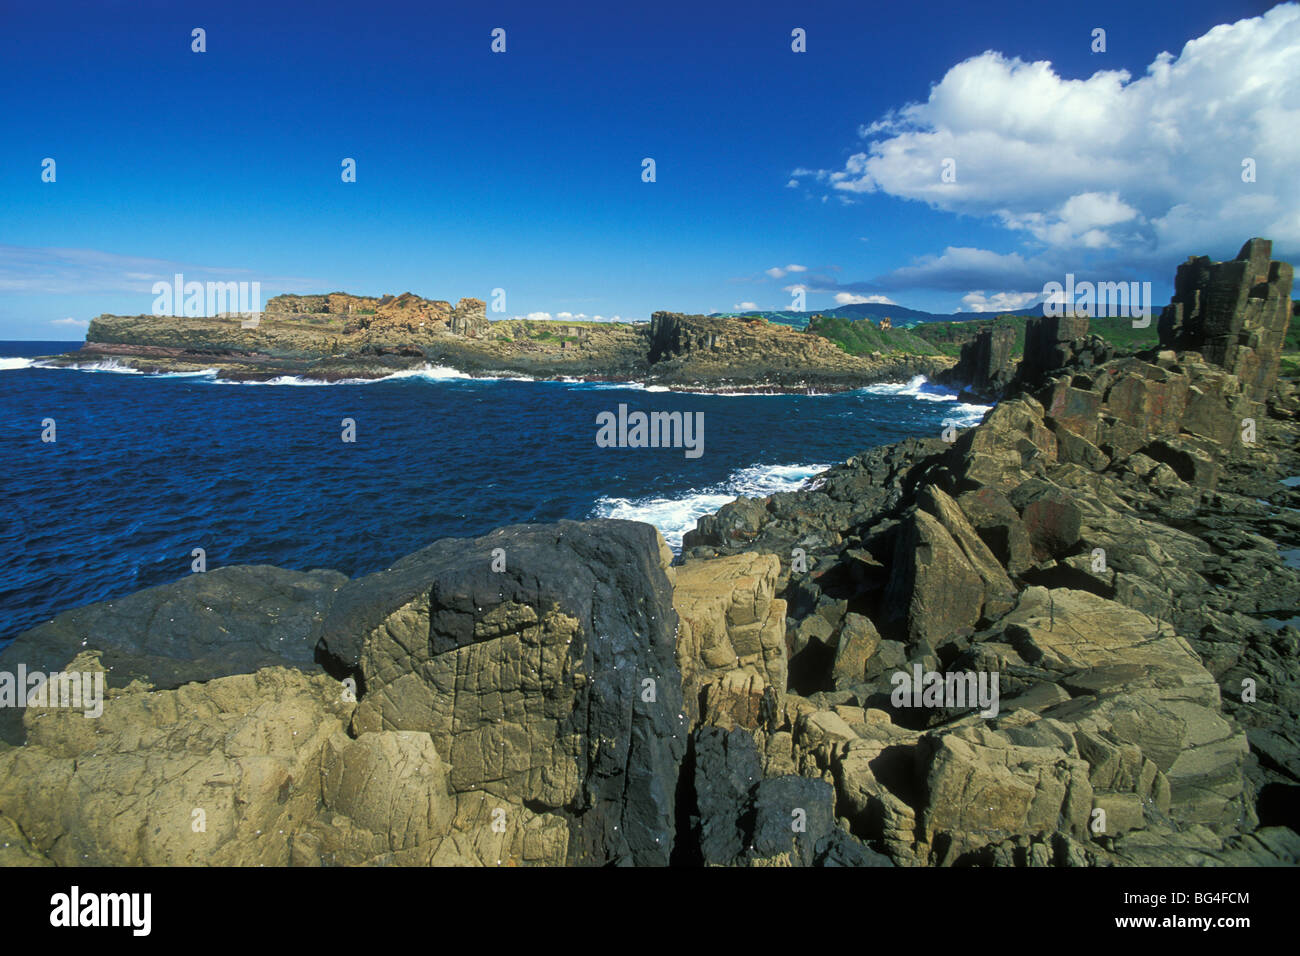 Columnar structures, created during cooling of basalt lava, near Bombo Beach, Kiama, south coast, New South Wales, - Stock Image